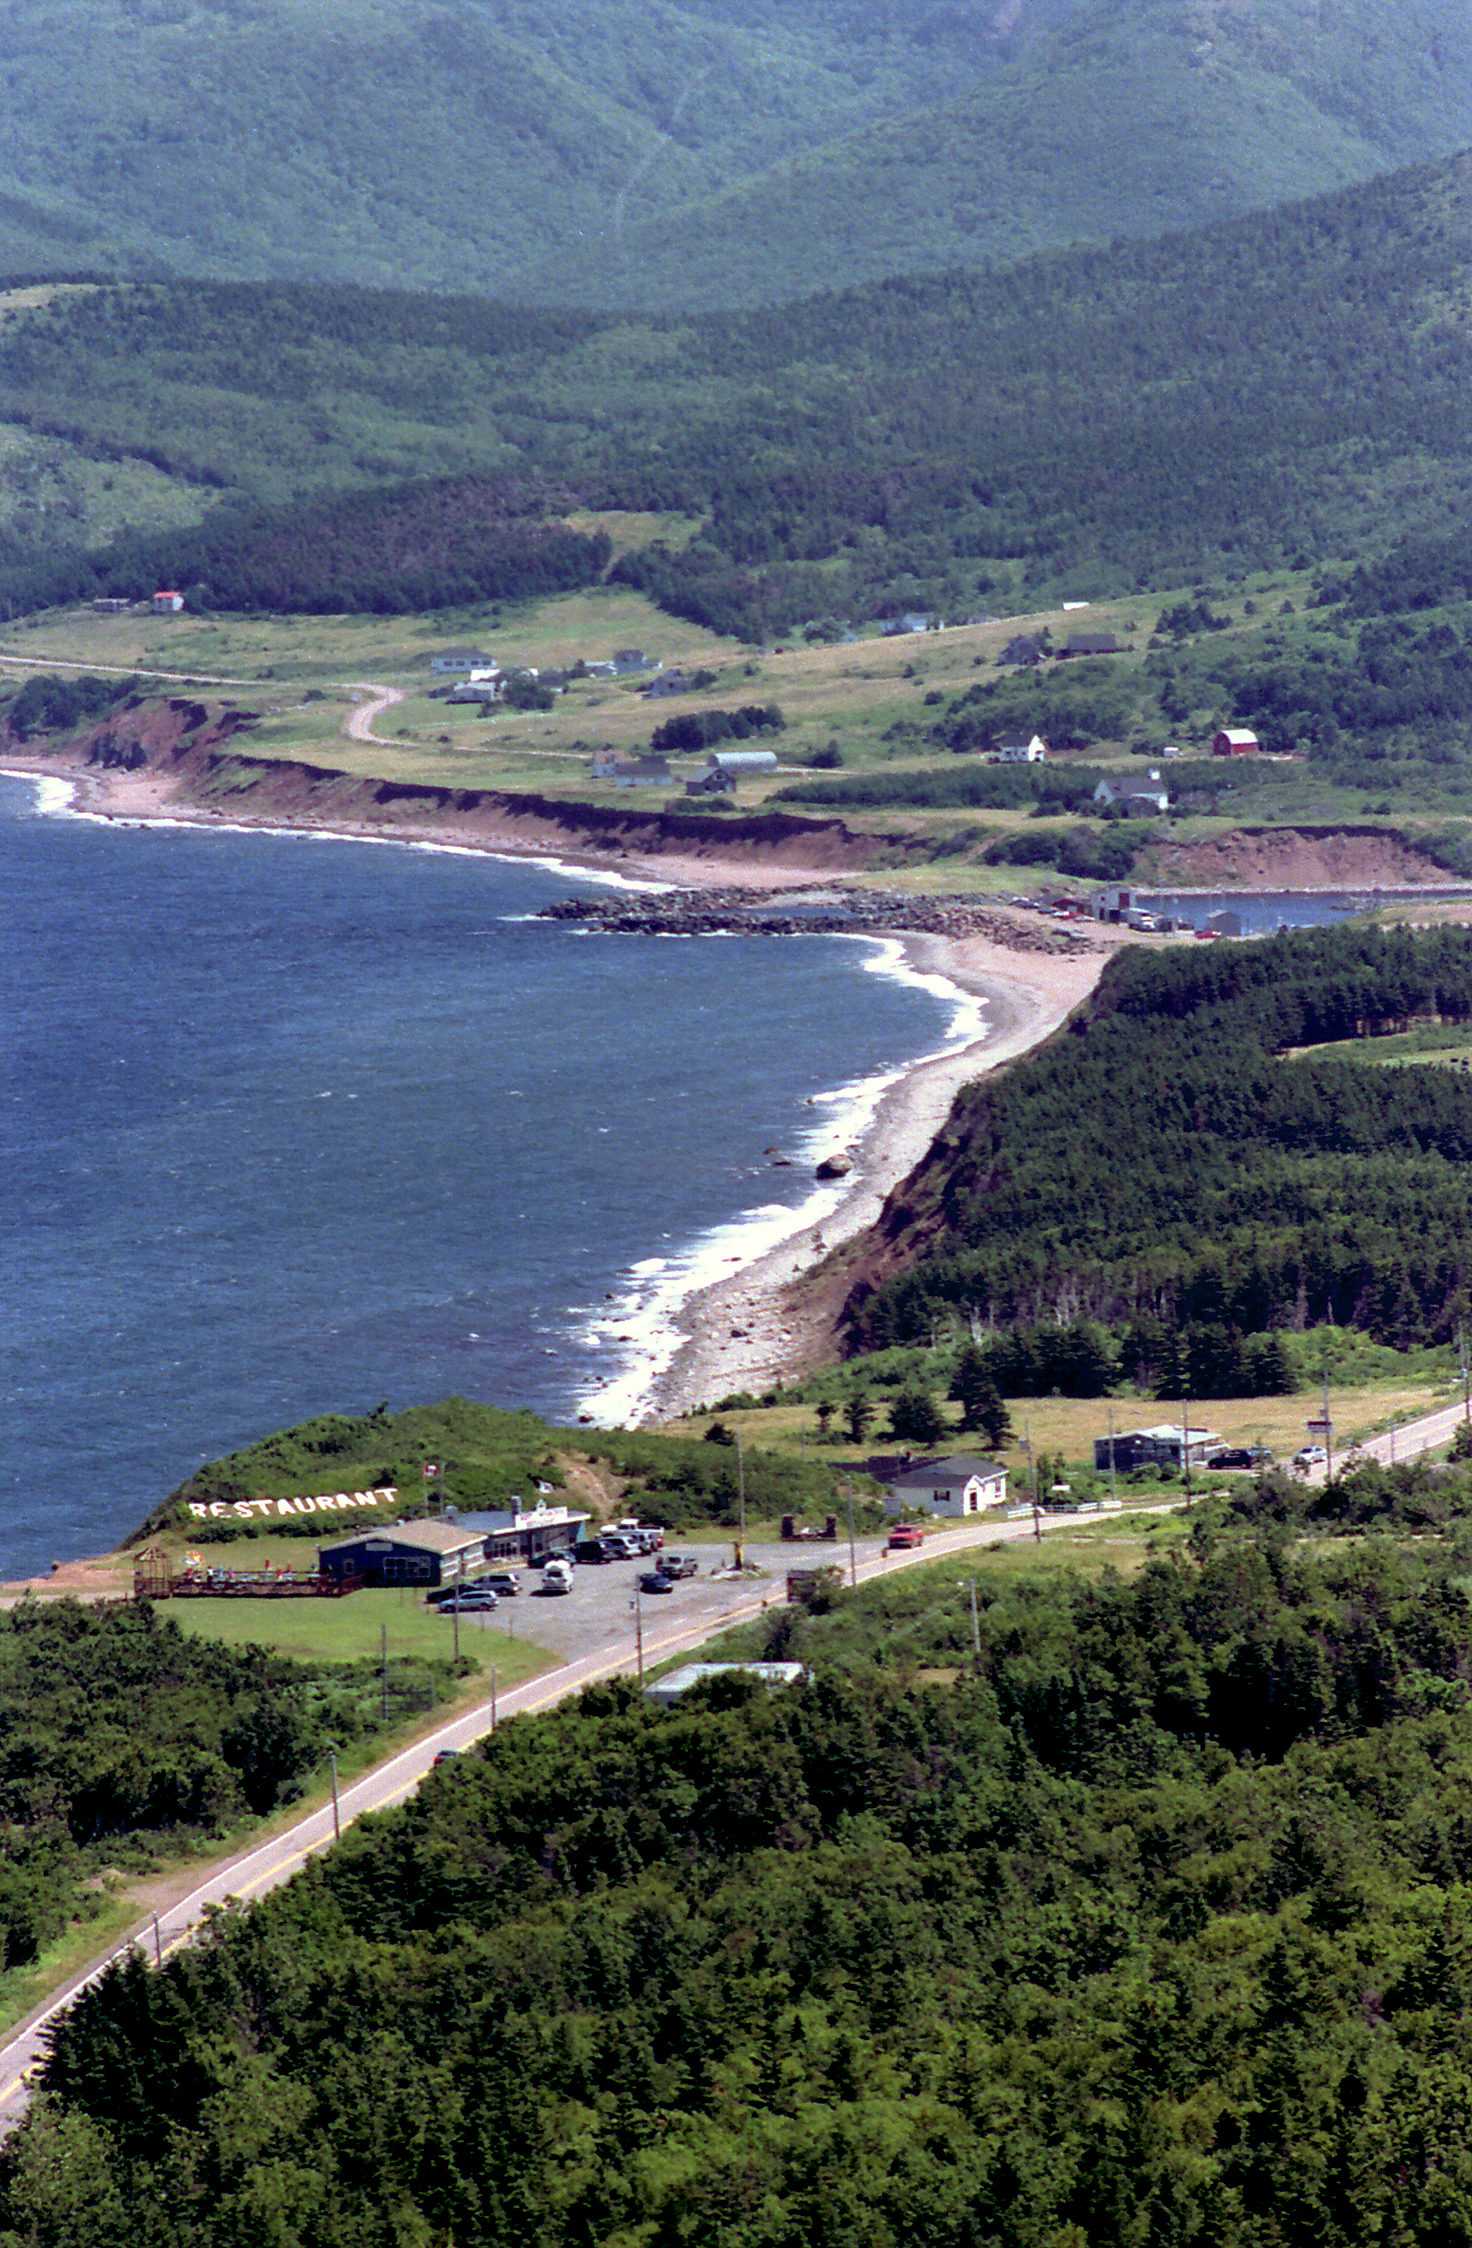 Cabot Trail - Wikipedia on 100-series highways, gulf of saint lawrence map, wagon train trails map, osa peninsula map, elbe river map, cape breton map, the wave az map, ceilidh trail, evangeline trail, old quebec, lighthouse route, ho chi minh trail map, cape breton island, skyline trail map, evangeline trail map, glooscap trail, hopewell rocks map, fleur-de-lis trail, bay of fundy map, eastern shore of virginia map, richmond county map, nova scotia route 245, nova scotia highway 103, bay of fundy, fortress of louisbourg map, denali highway map, nova scotia highway 101, sunrise trail, cape breton highlands national park, sunrise trail map, mediterranean coast map, canada map, new brunswick map, marconi trail, nahanni national park reserve, marine drive, nova scotia map,